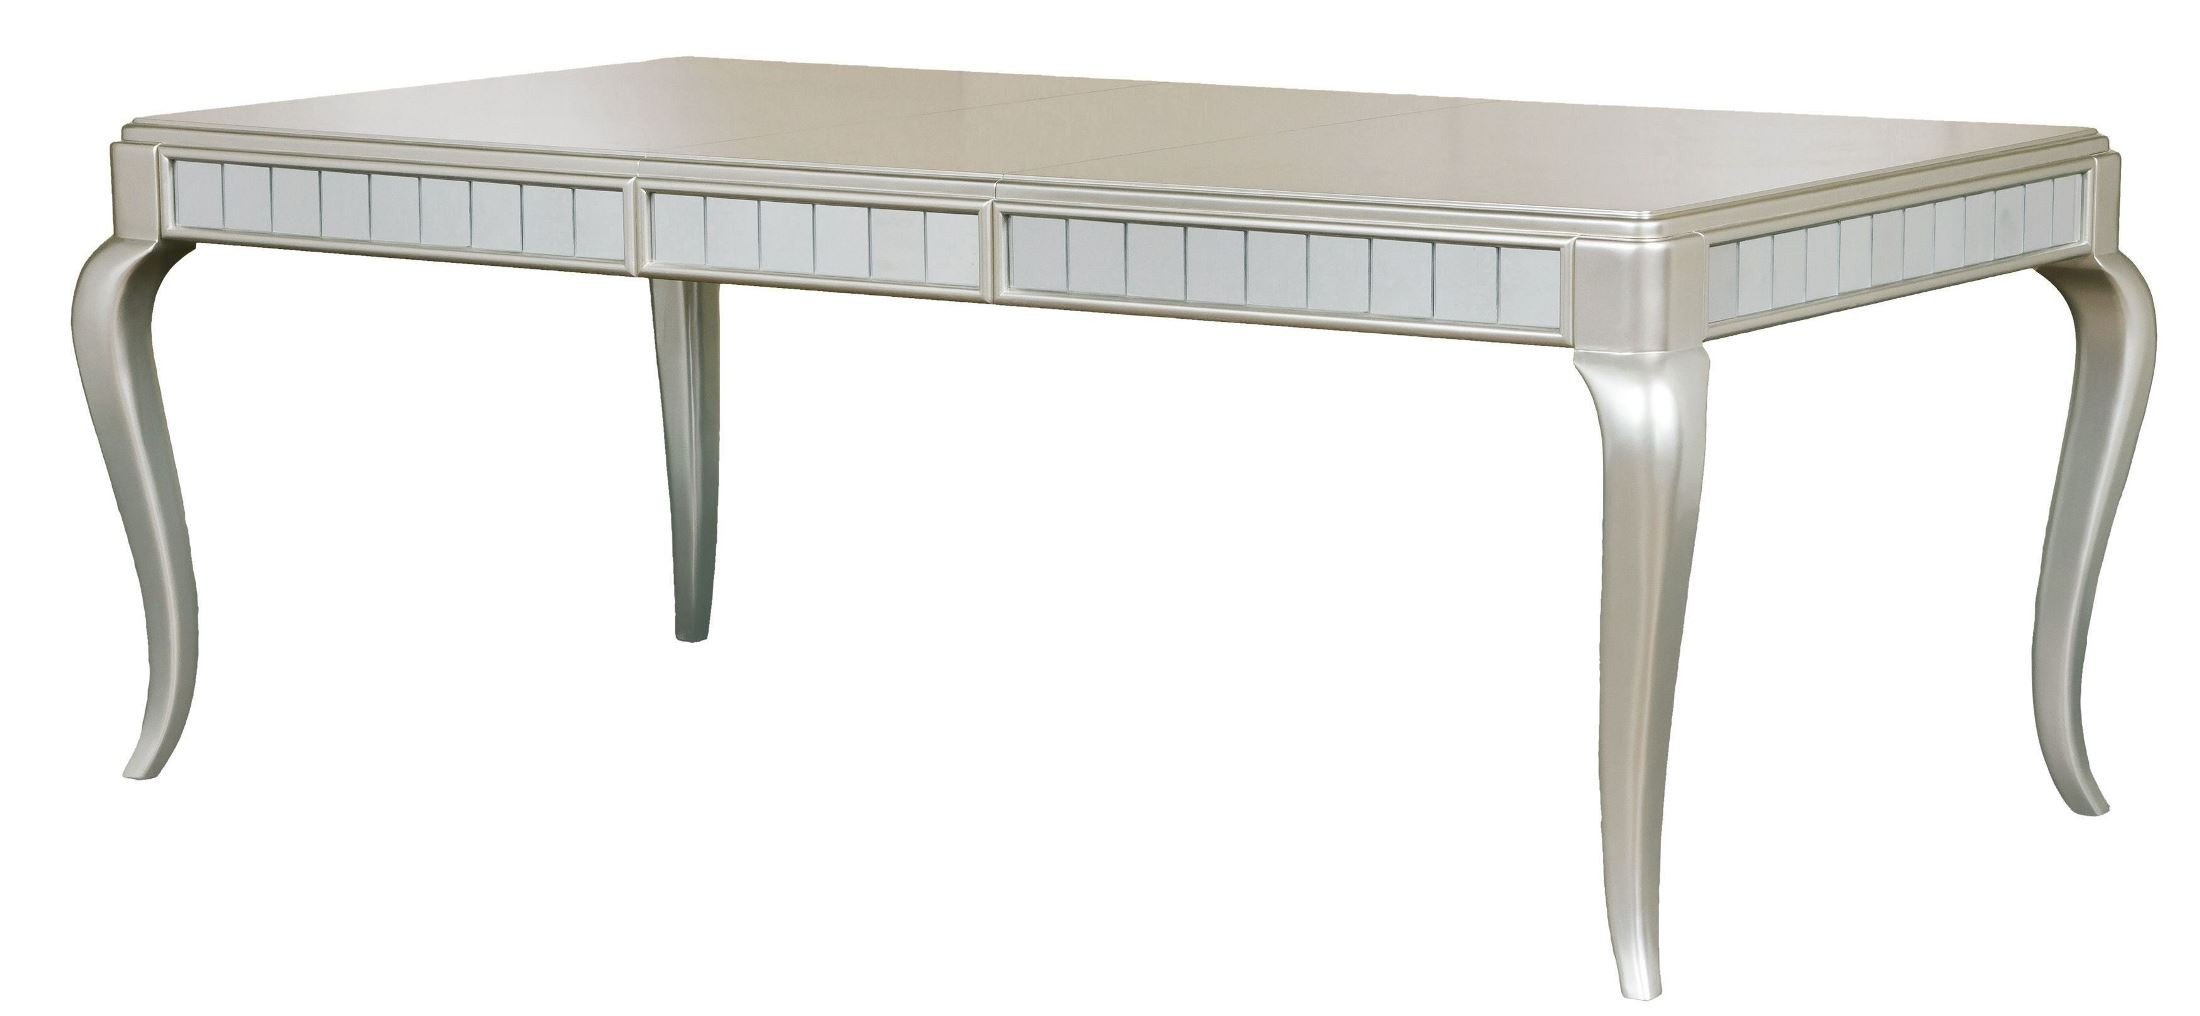 100 Metallic Coffee Table Mmt6000a Coffee Tables  : 8808 135 s4cc1 from 45.32.79.15 size 2200 x 1016 jpeg 126kB